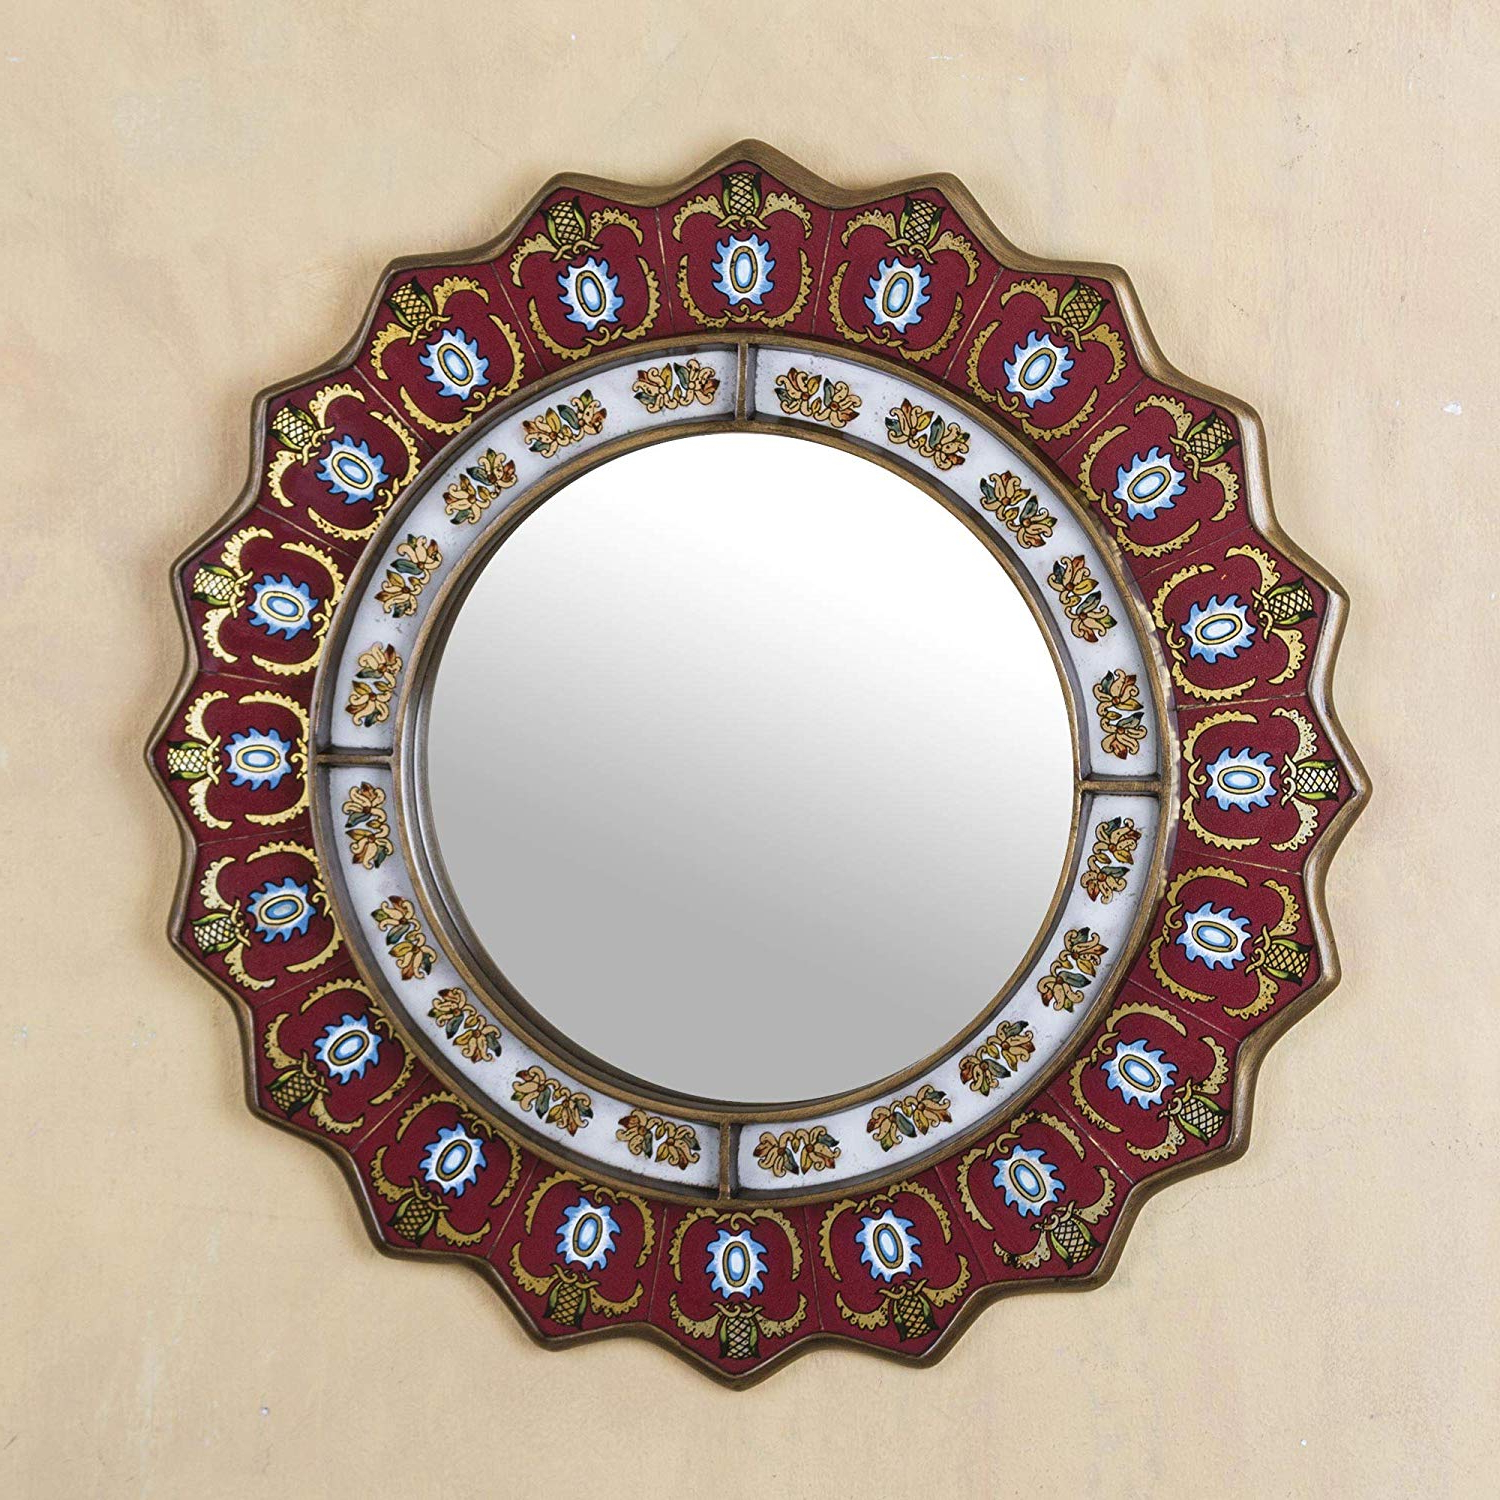 Trendy Red Framed Wall Mirrors With Novica Mi0006 Red Reverse Painted Glass Wood Framed Decorative Star Wall Mirror From Peru 'ruby Medallion' (large) (View 12 of 20)